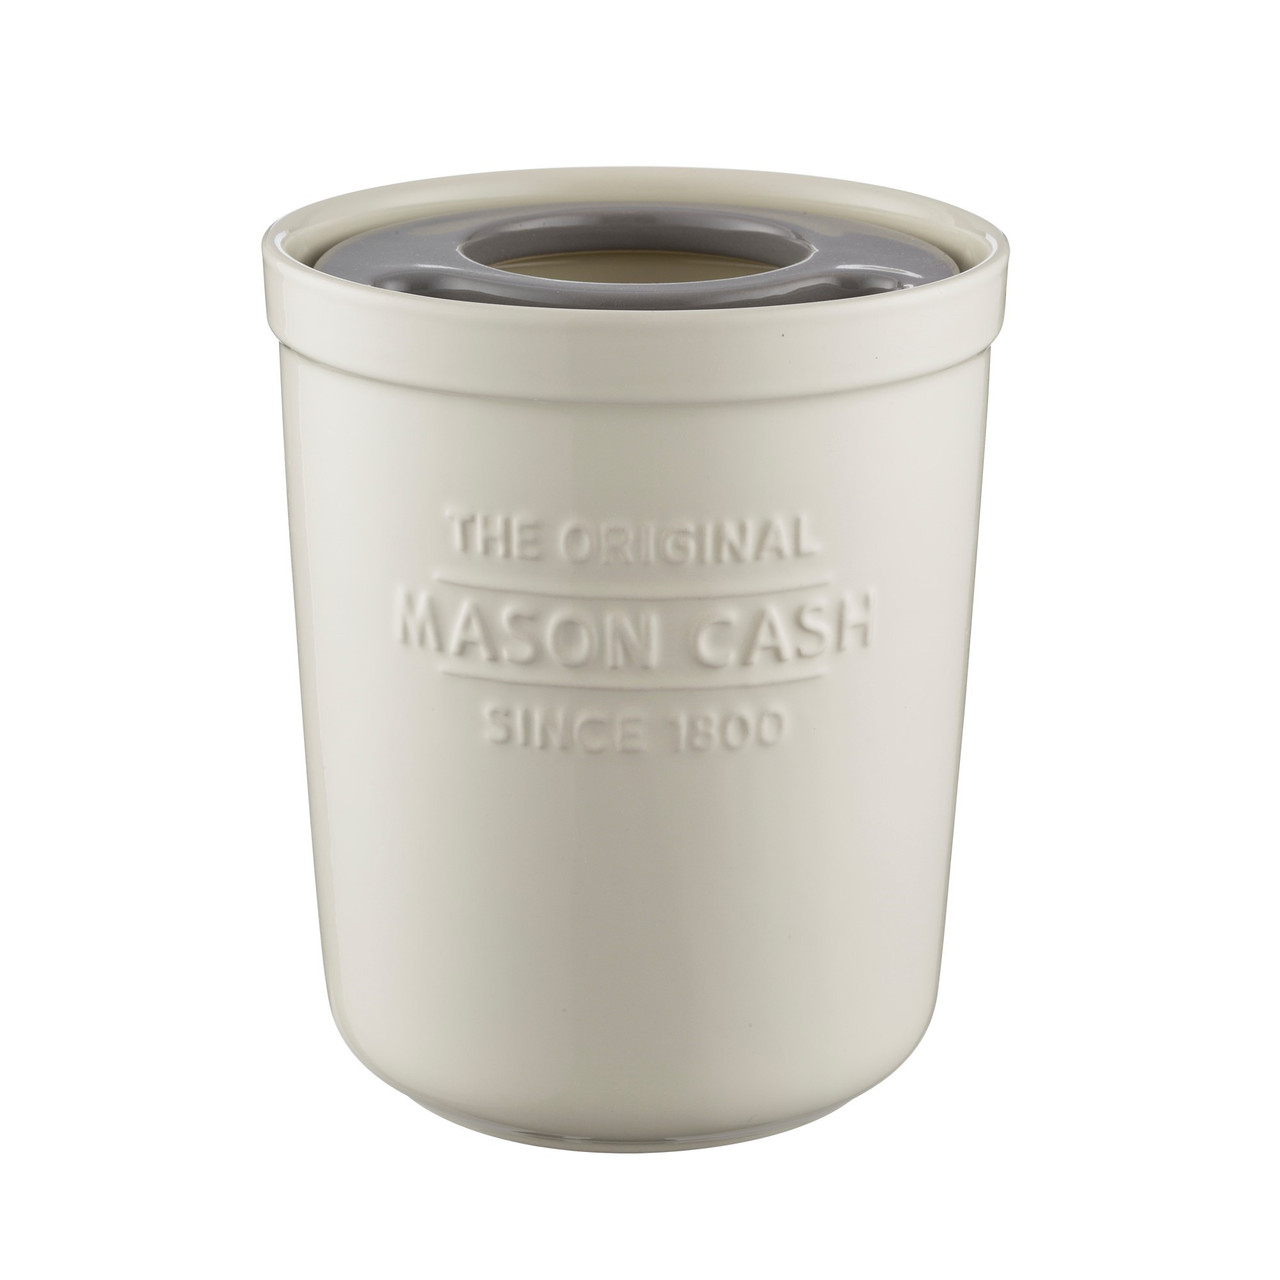 MASON CASH INNOVATIVE UTENSIL HOLDER